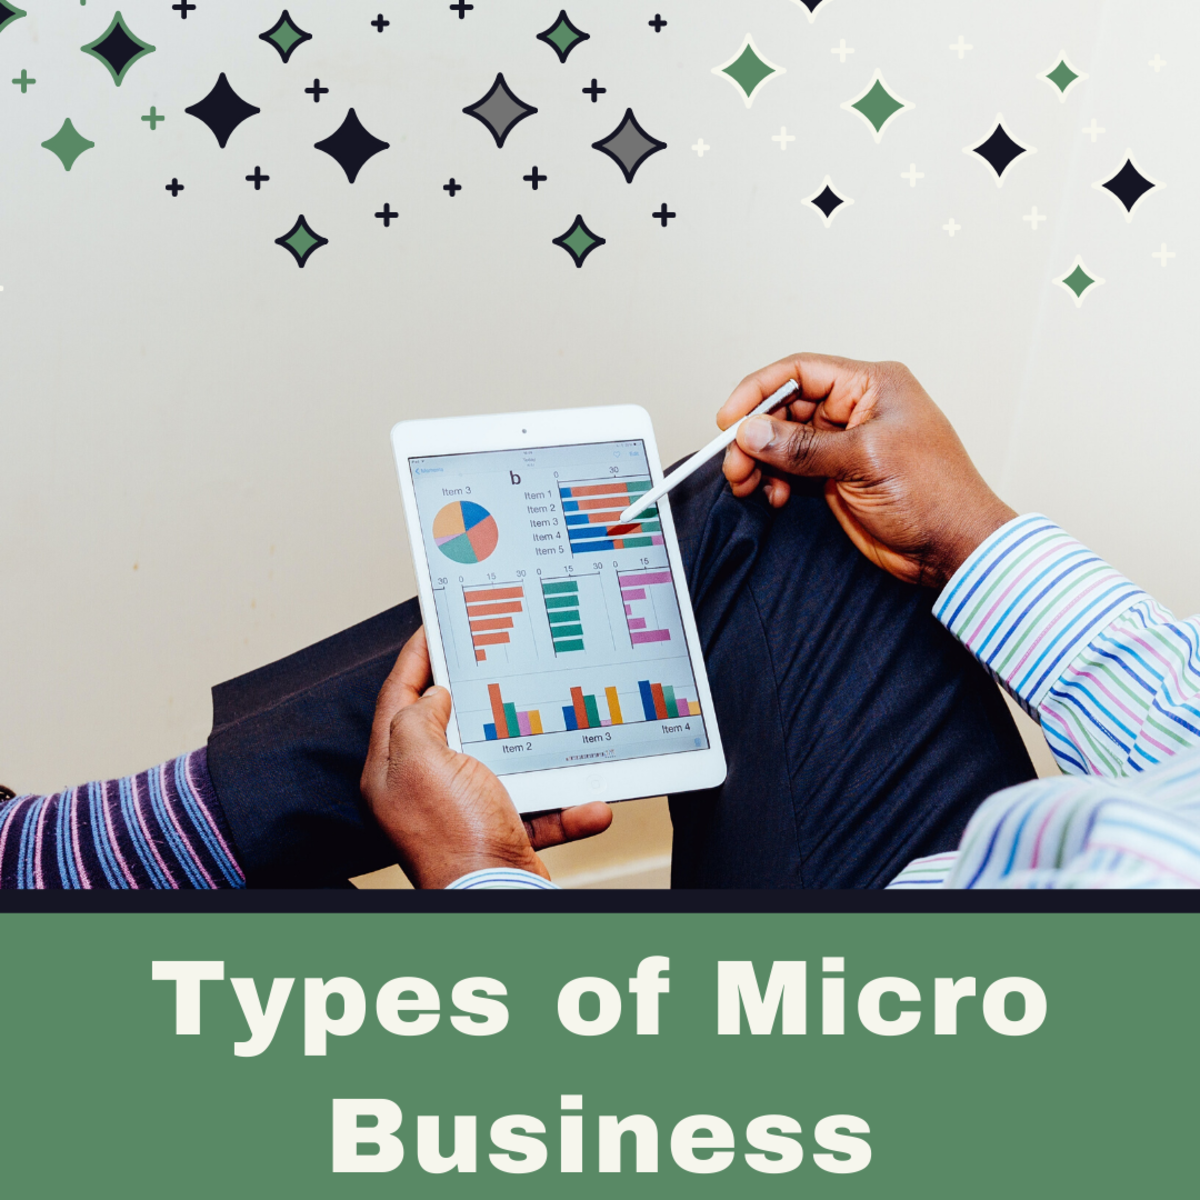 Types of Micro Business